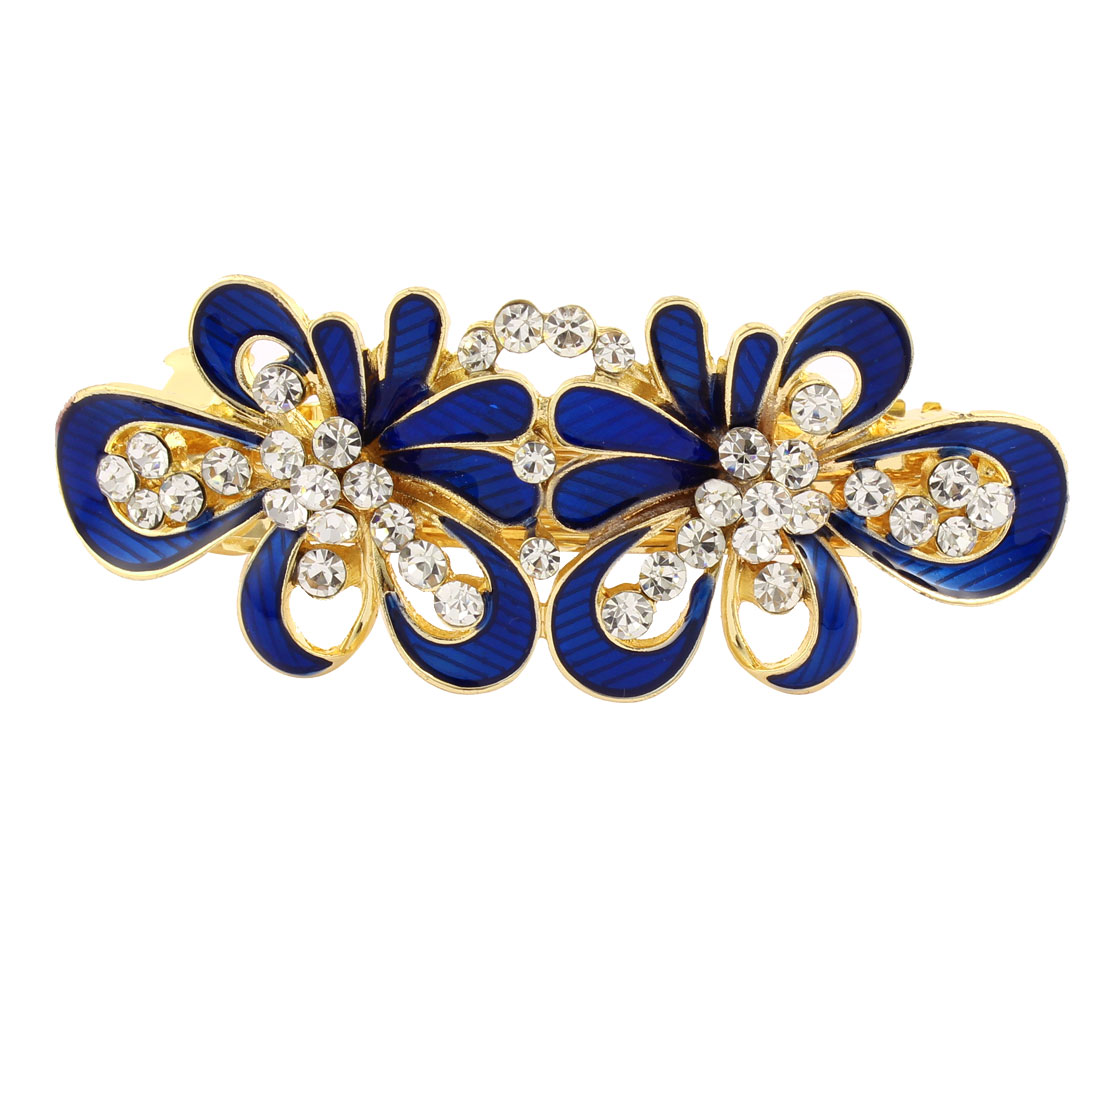 Women Rhinestone Detail Floral Shape Spring Loaded Hair Barrette Clip Blue